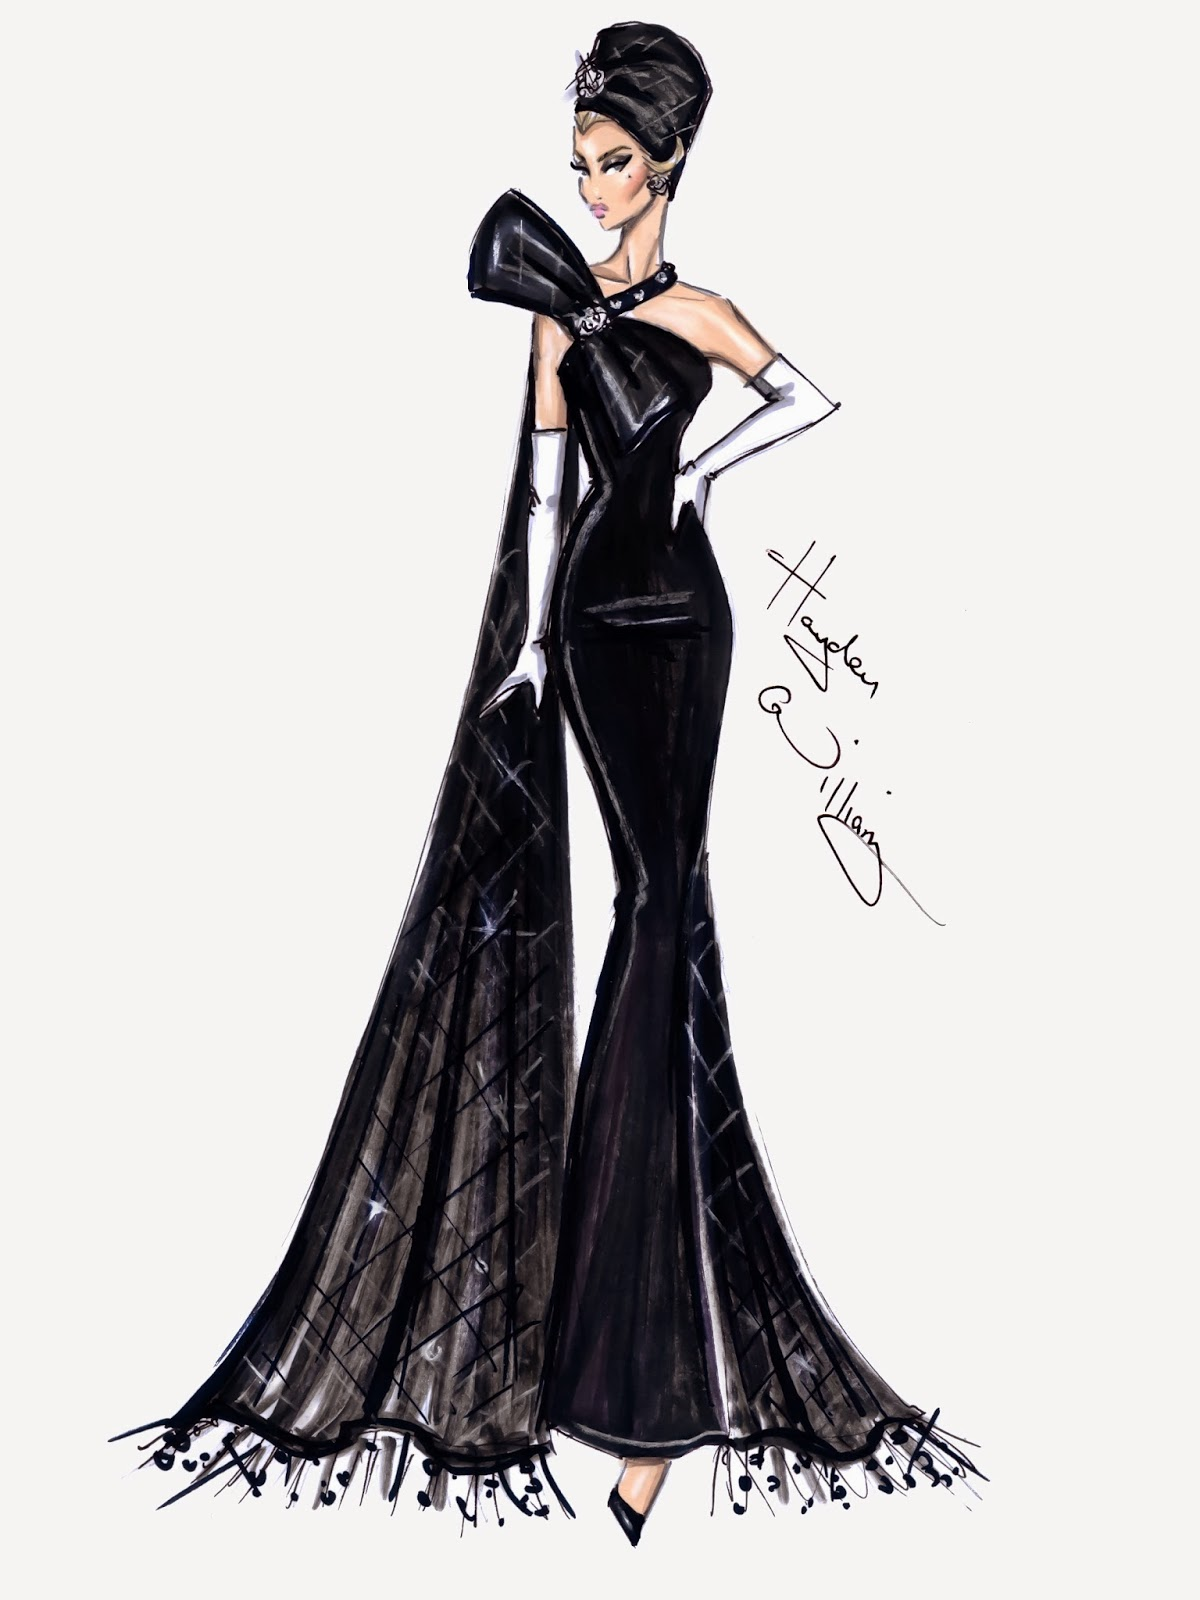 Hayden williams fashion illustrations january 2014 for Hot couture fashion